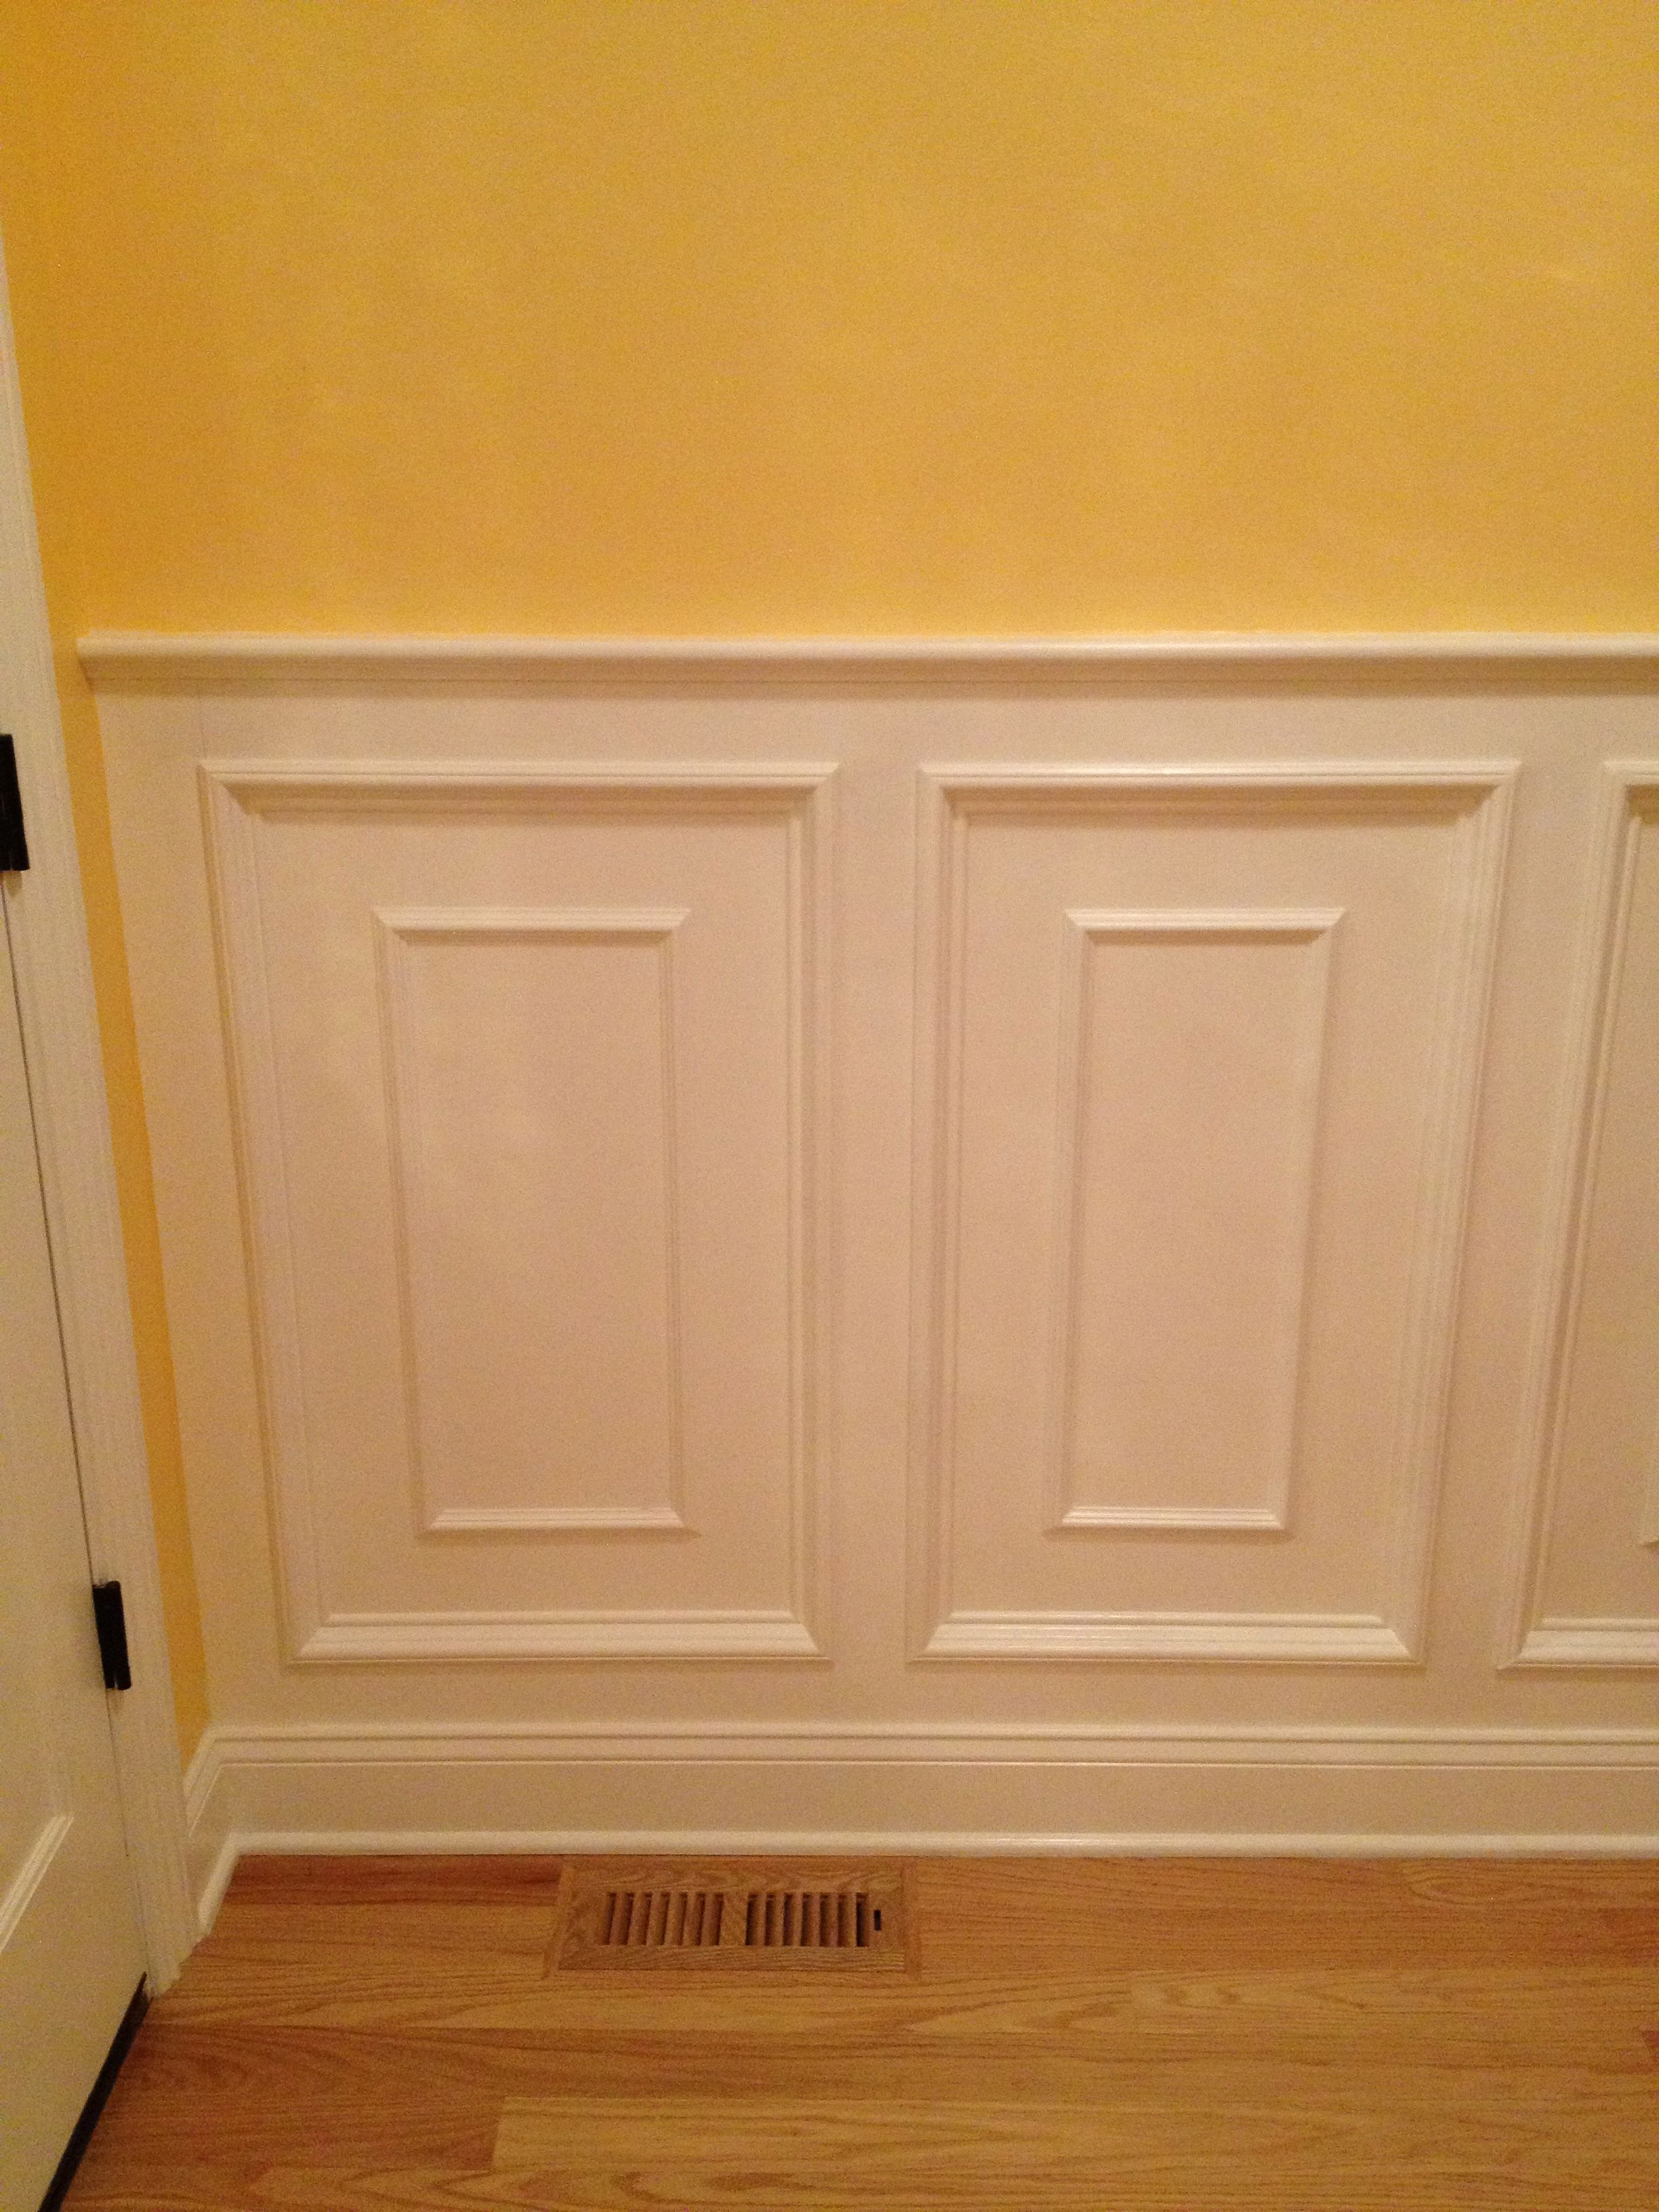 Panel  molding by Gorsegner Brothers  Hardwood  Floors   Panel     Panel  molding by Gorsegner Brothers  Hardwood  Floors